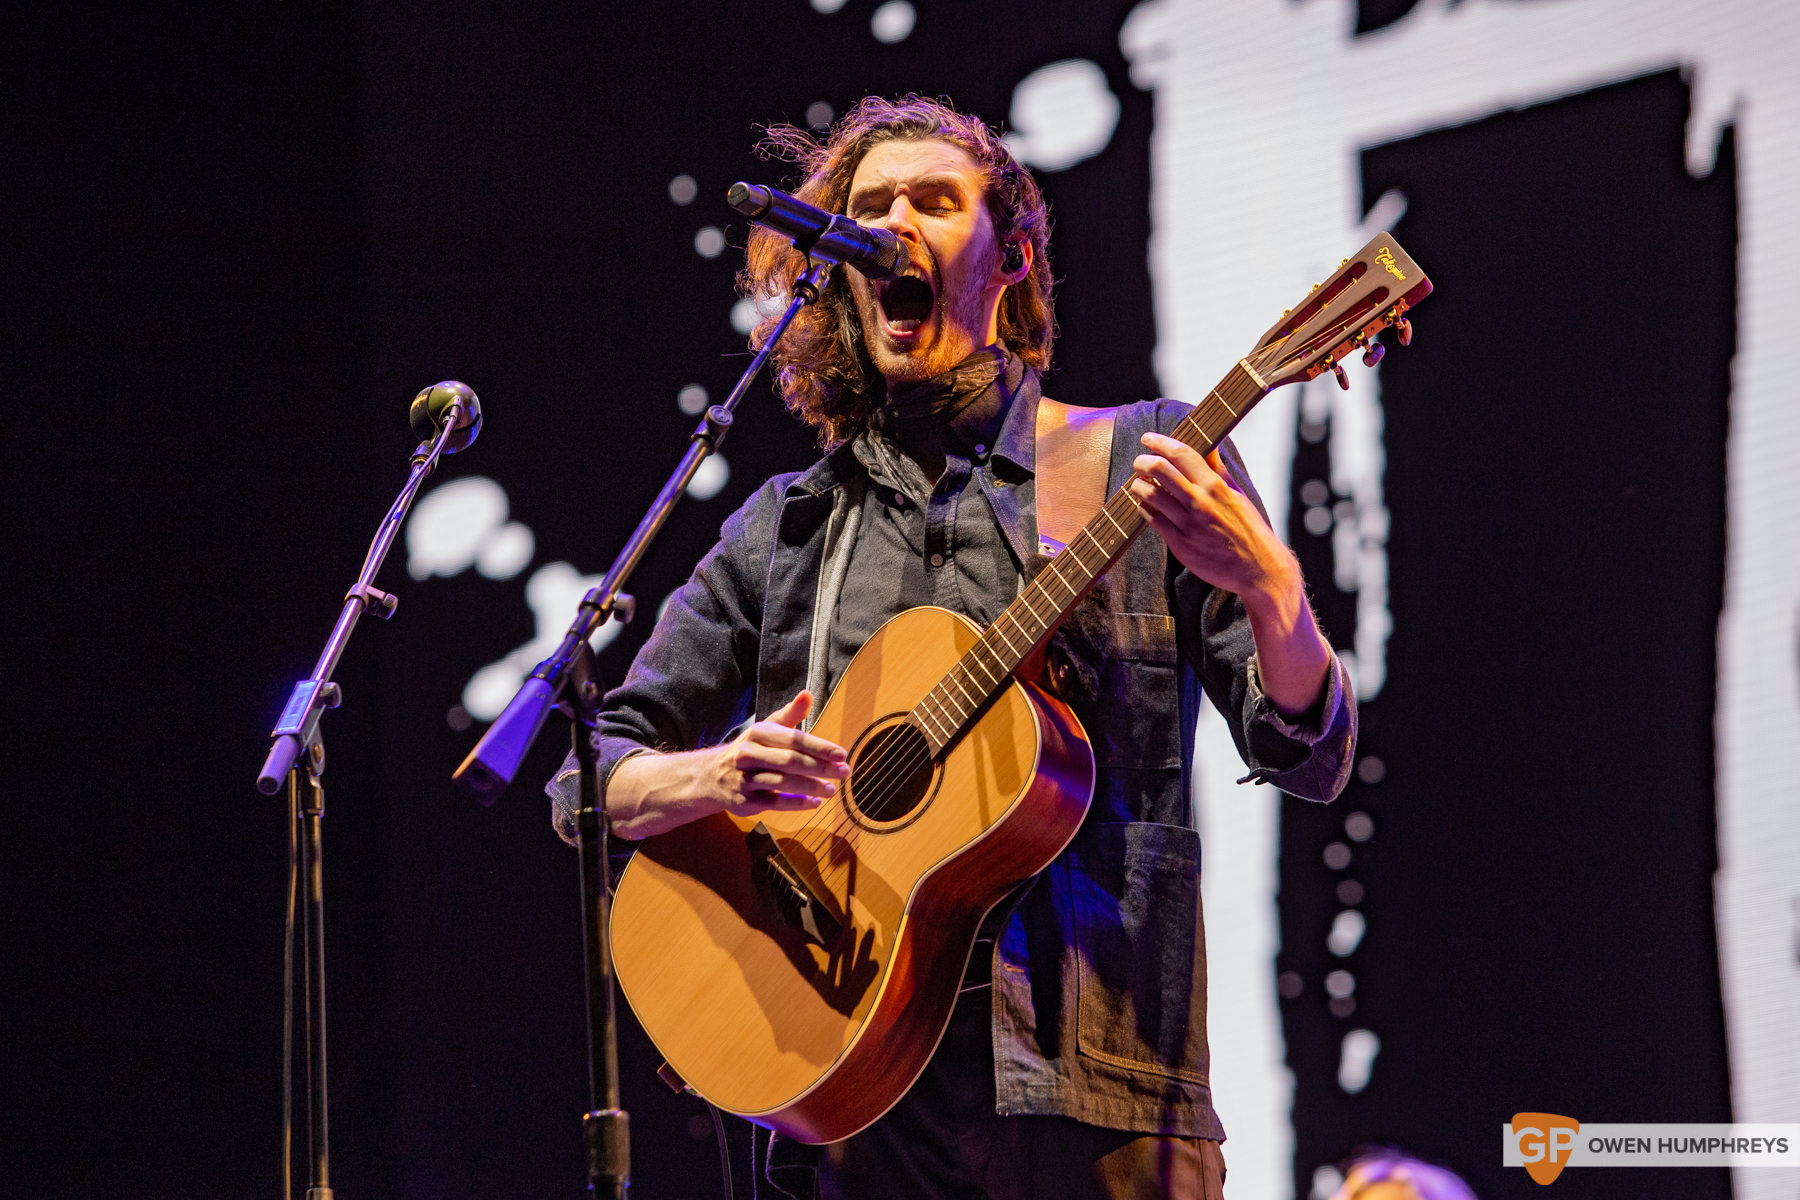 Hozier at Electric Picnic 2019. Photo by Owen Humphreys. www.owen.ie